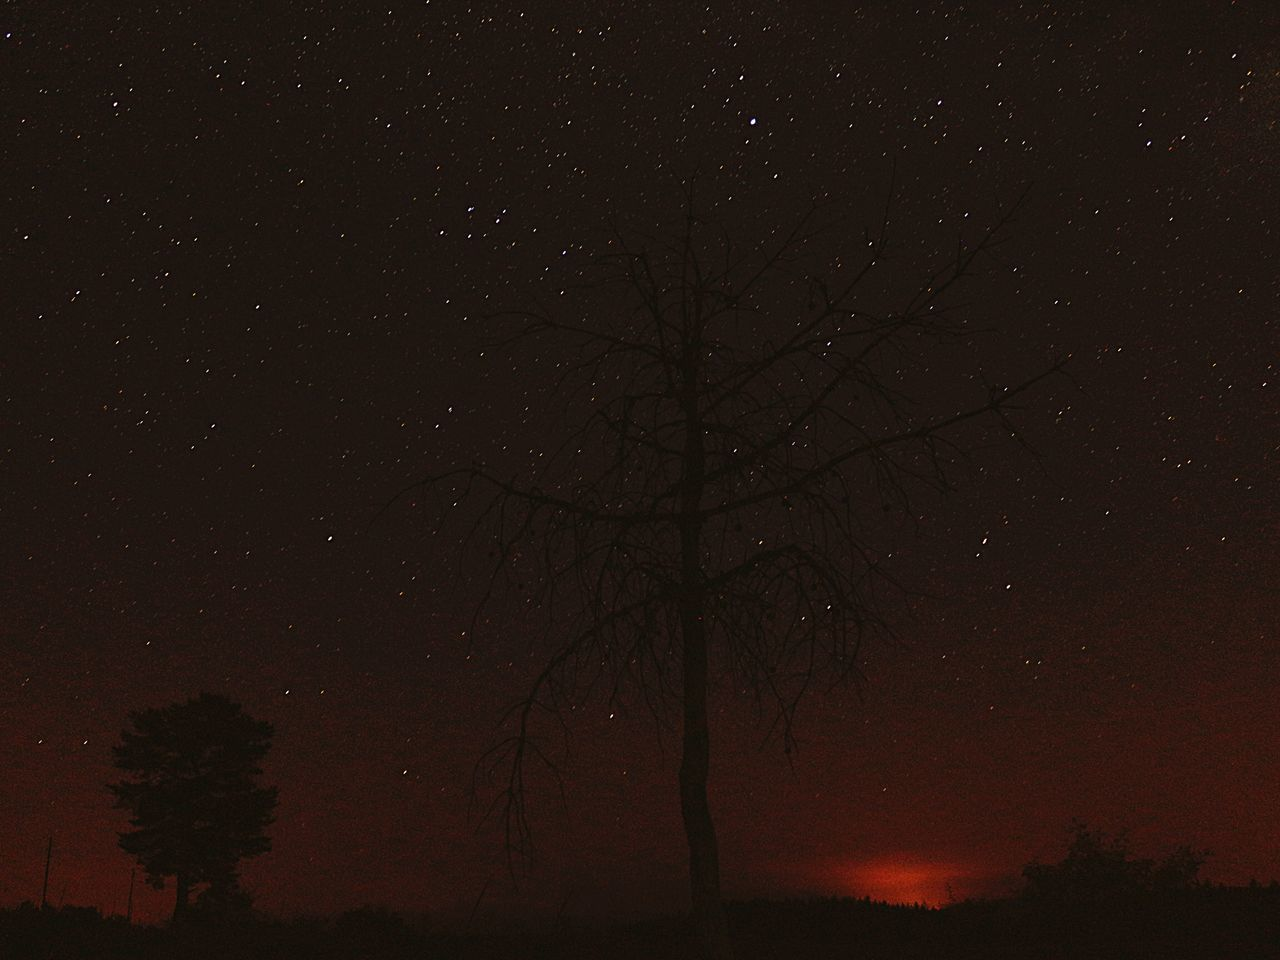 EyeEm Selects EyeEmNewHere Night Tranquility Tree Beauty In Nature Tranquil Scene Star - Space Nature Majestic Scenics Bare Tree Astronomy No People Silhouette Landscape Sky Outdoors Starry Galaxy Constellation